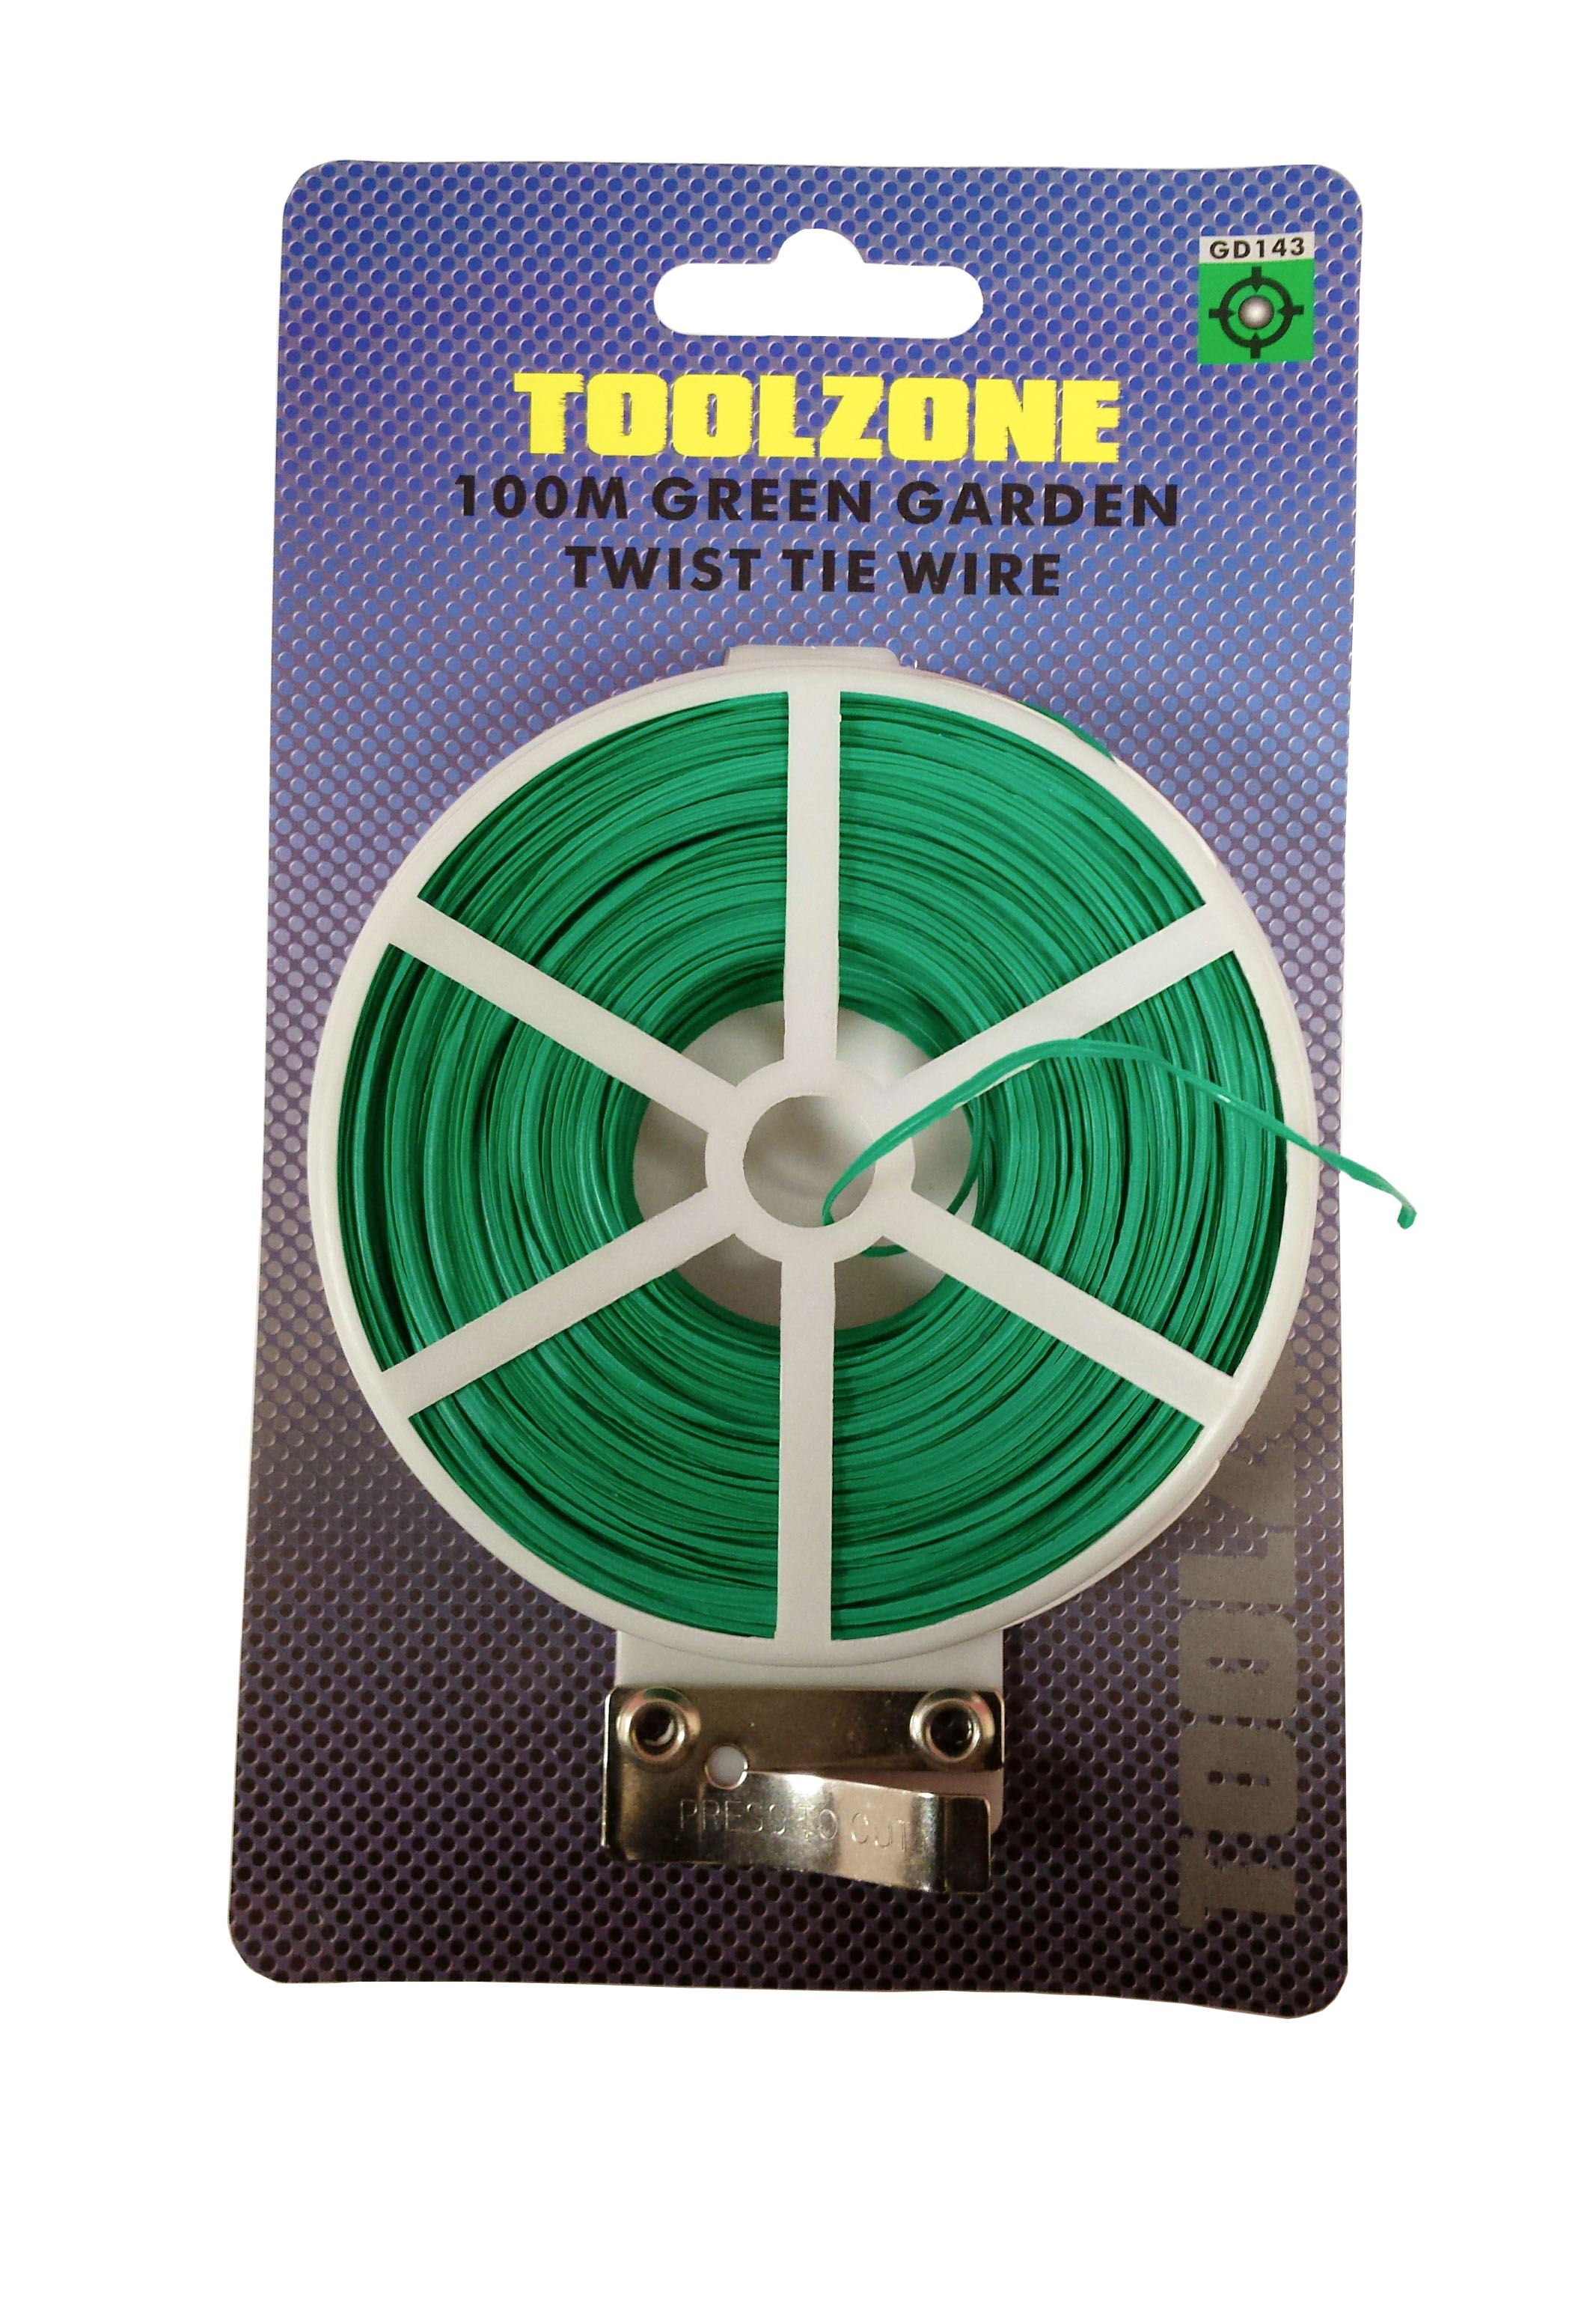 Toolzone 100M Twist Tie On Holder